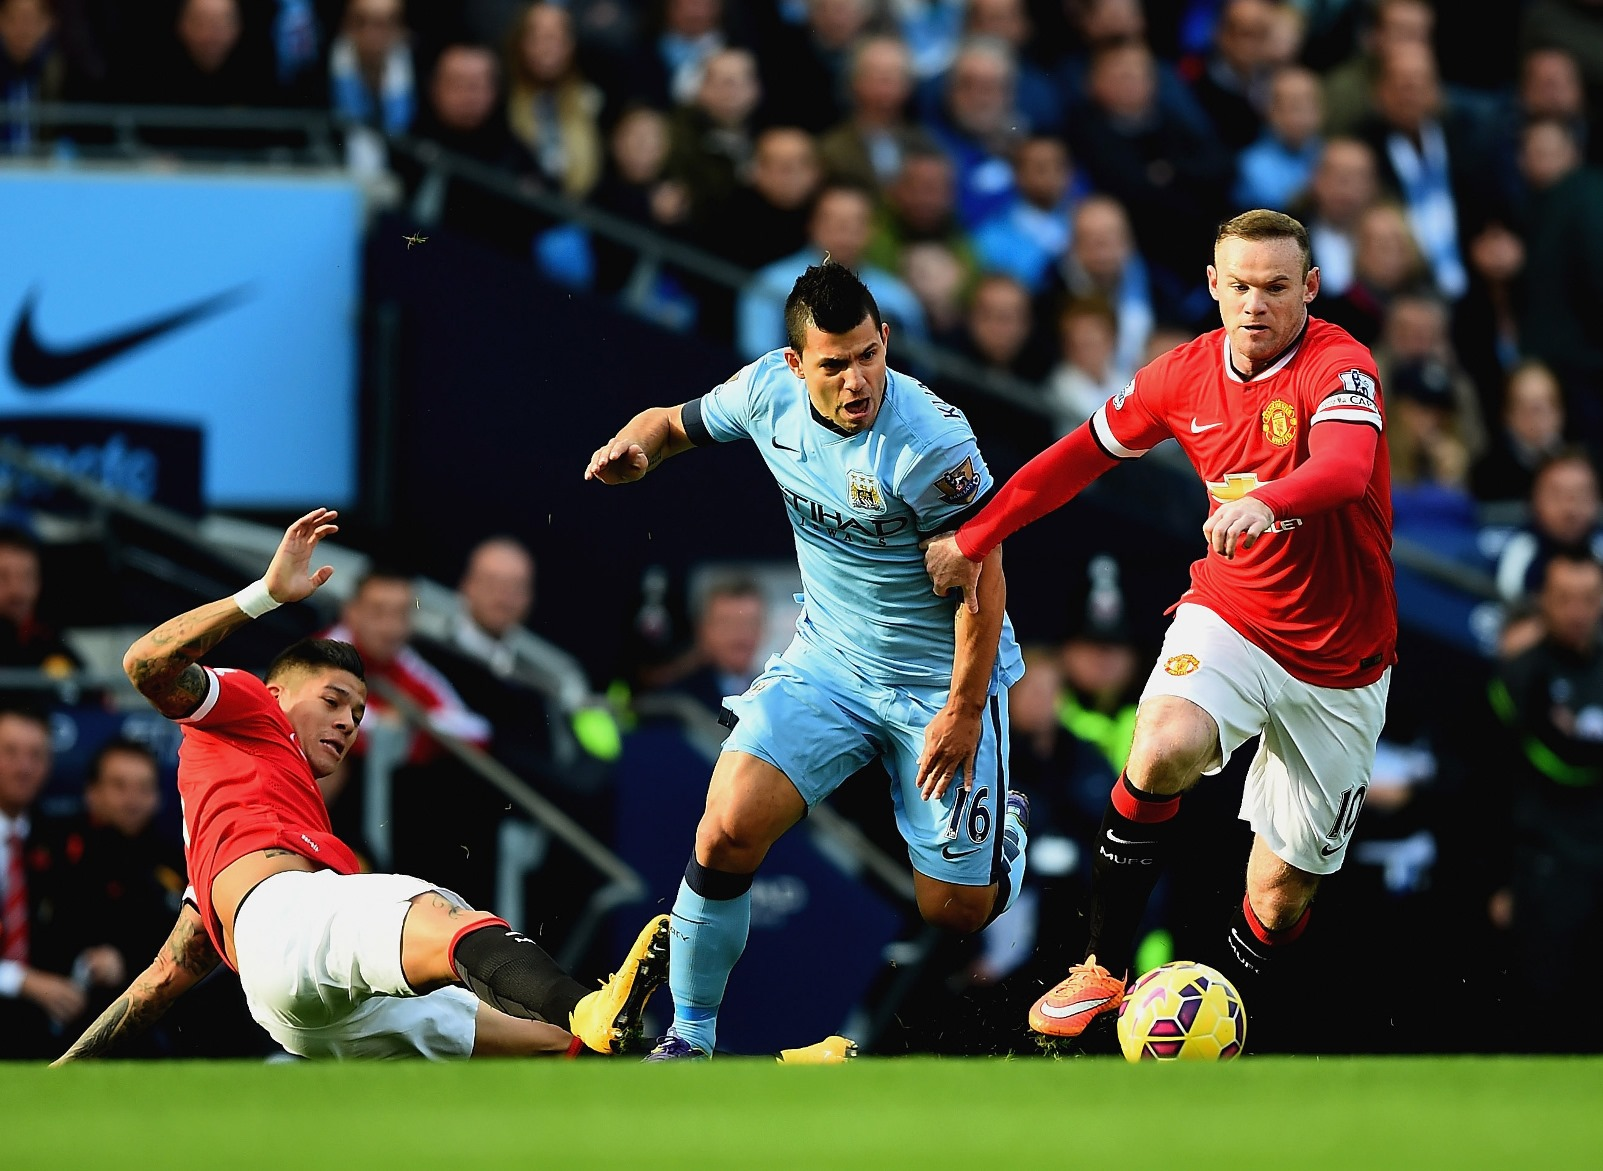 Man City 1-0 Man United: Development, arrested